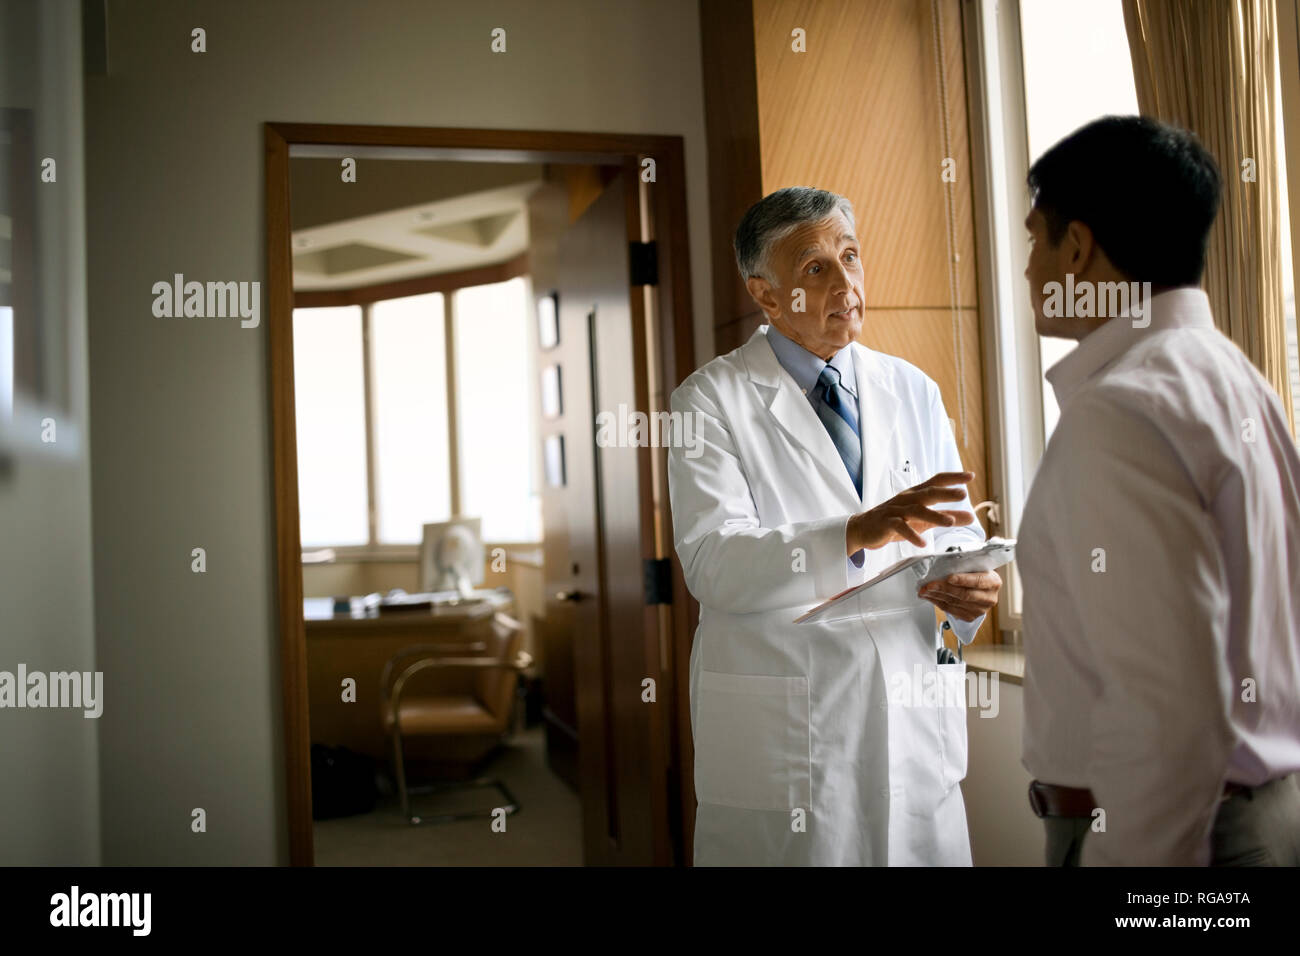 Friendly senior doctor consulting with a patient outside his office. - Stock Image